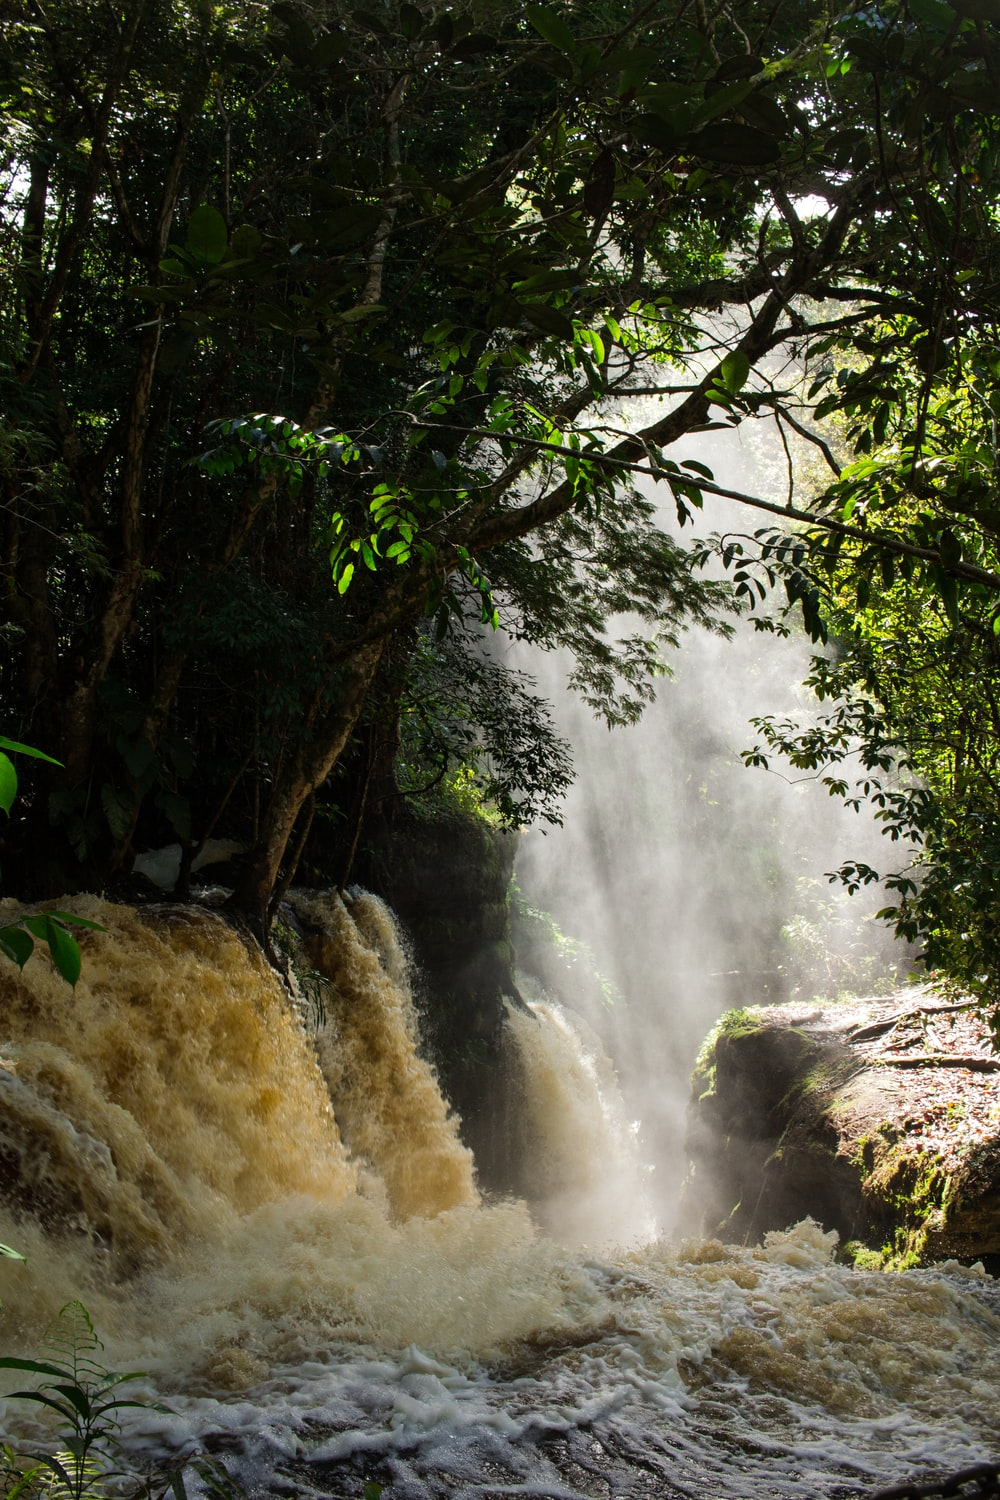 water falls with trees